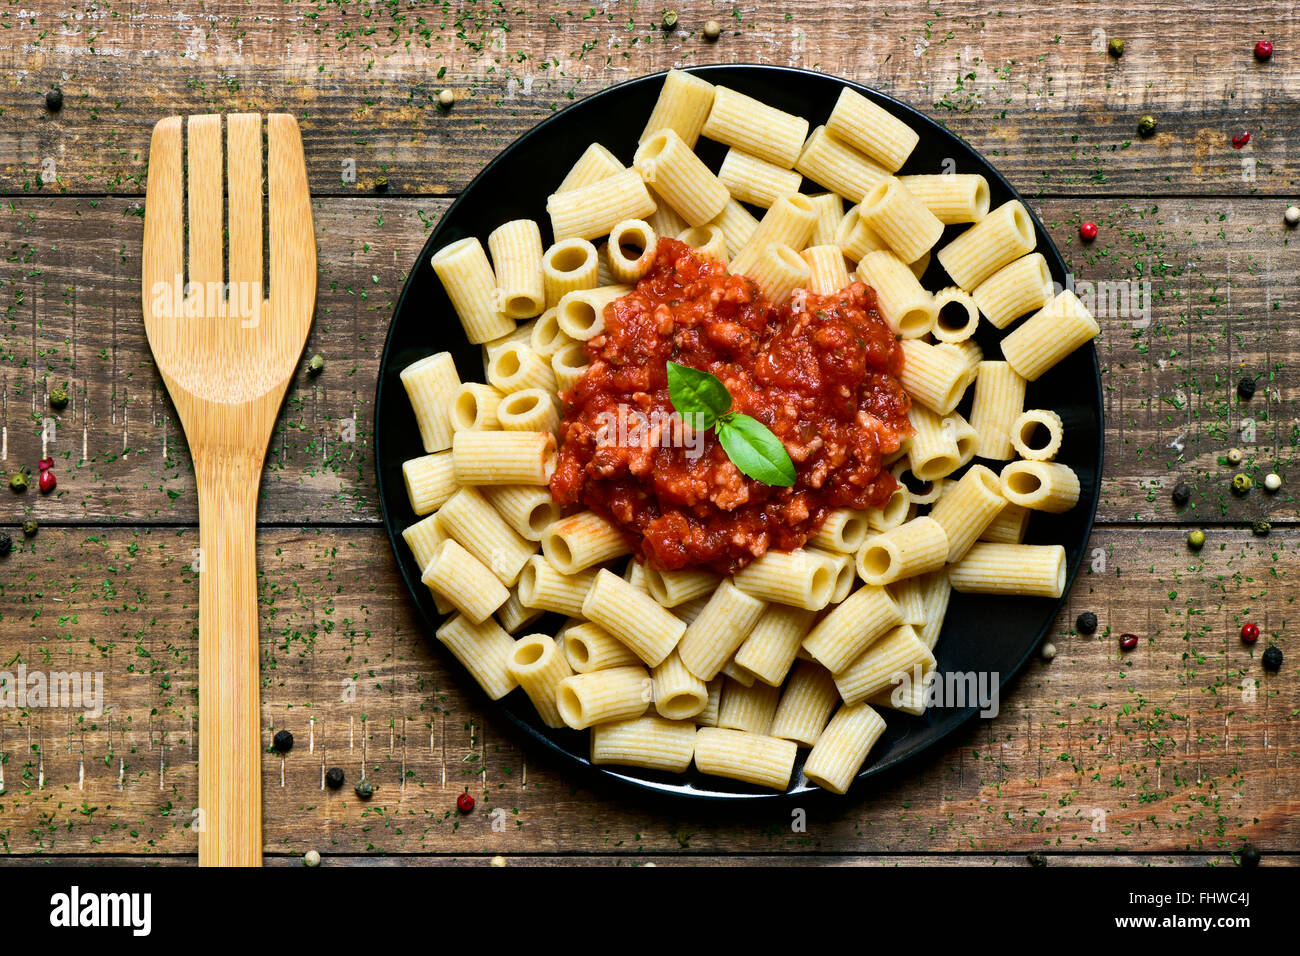 high angle shot of a wooden fork and a black plate with penne rigate with bolognese sauce on a rustic wooden table - Stock Image